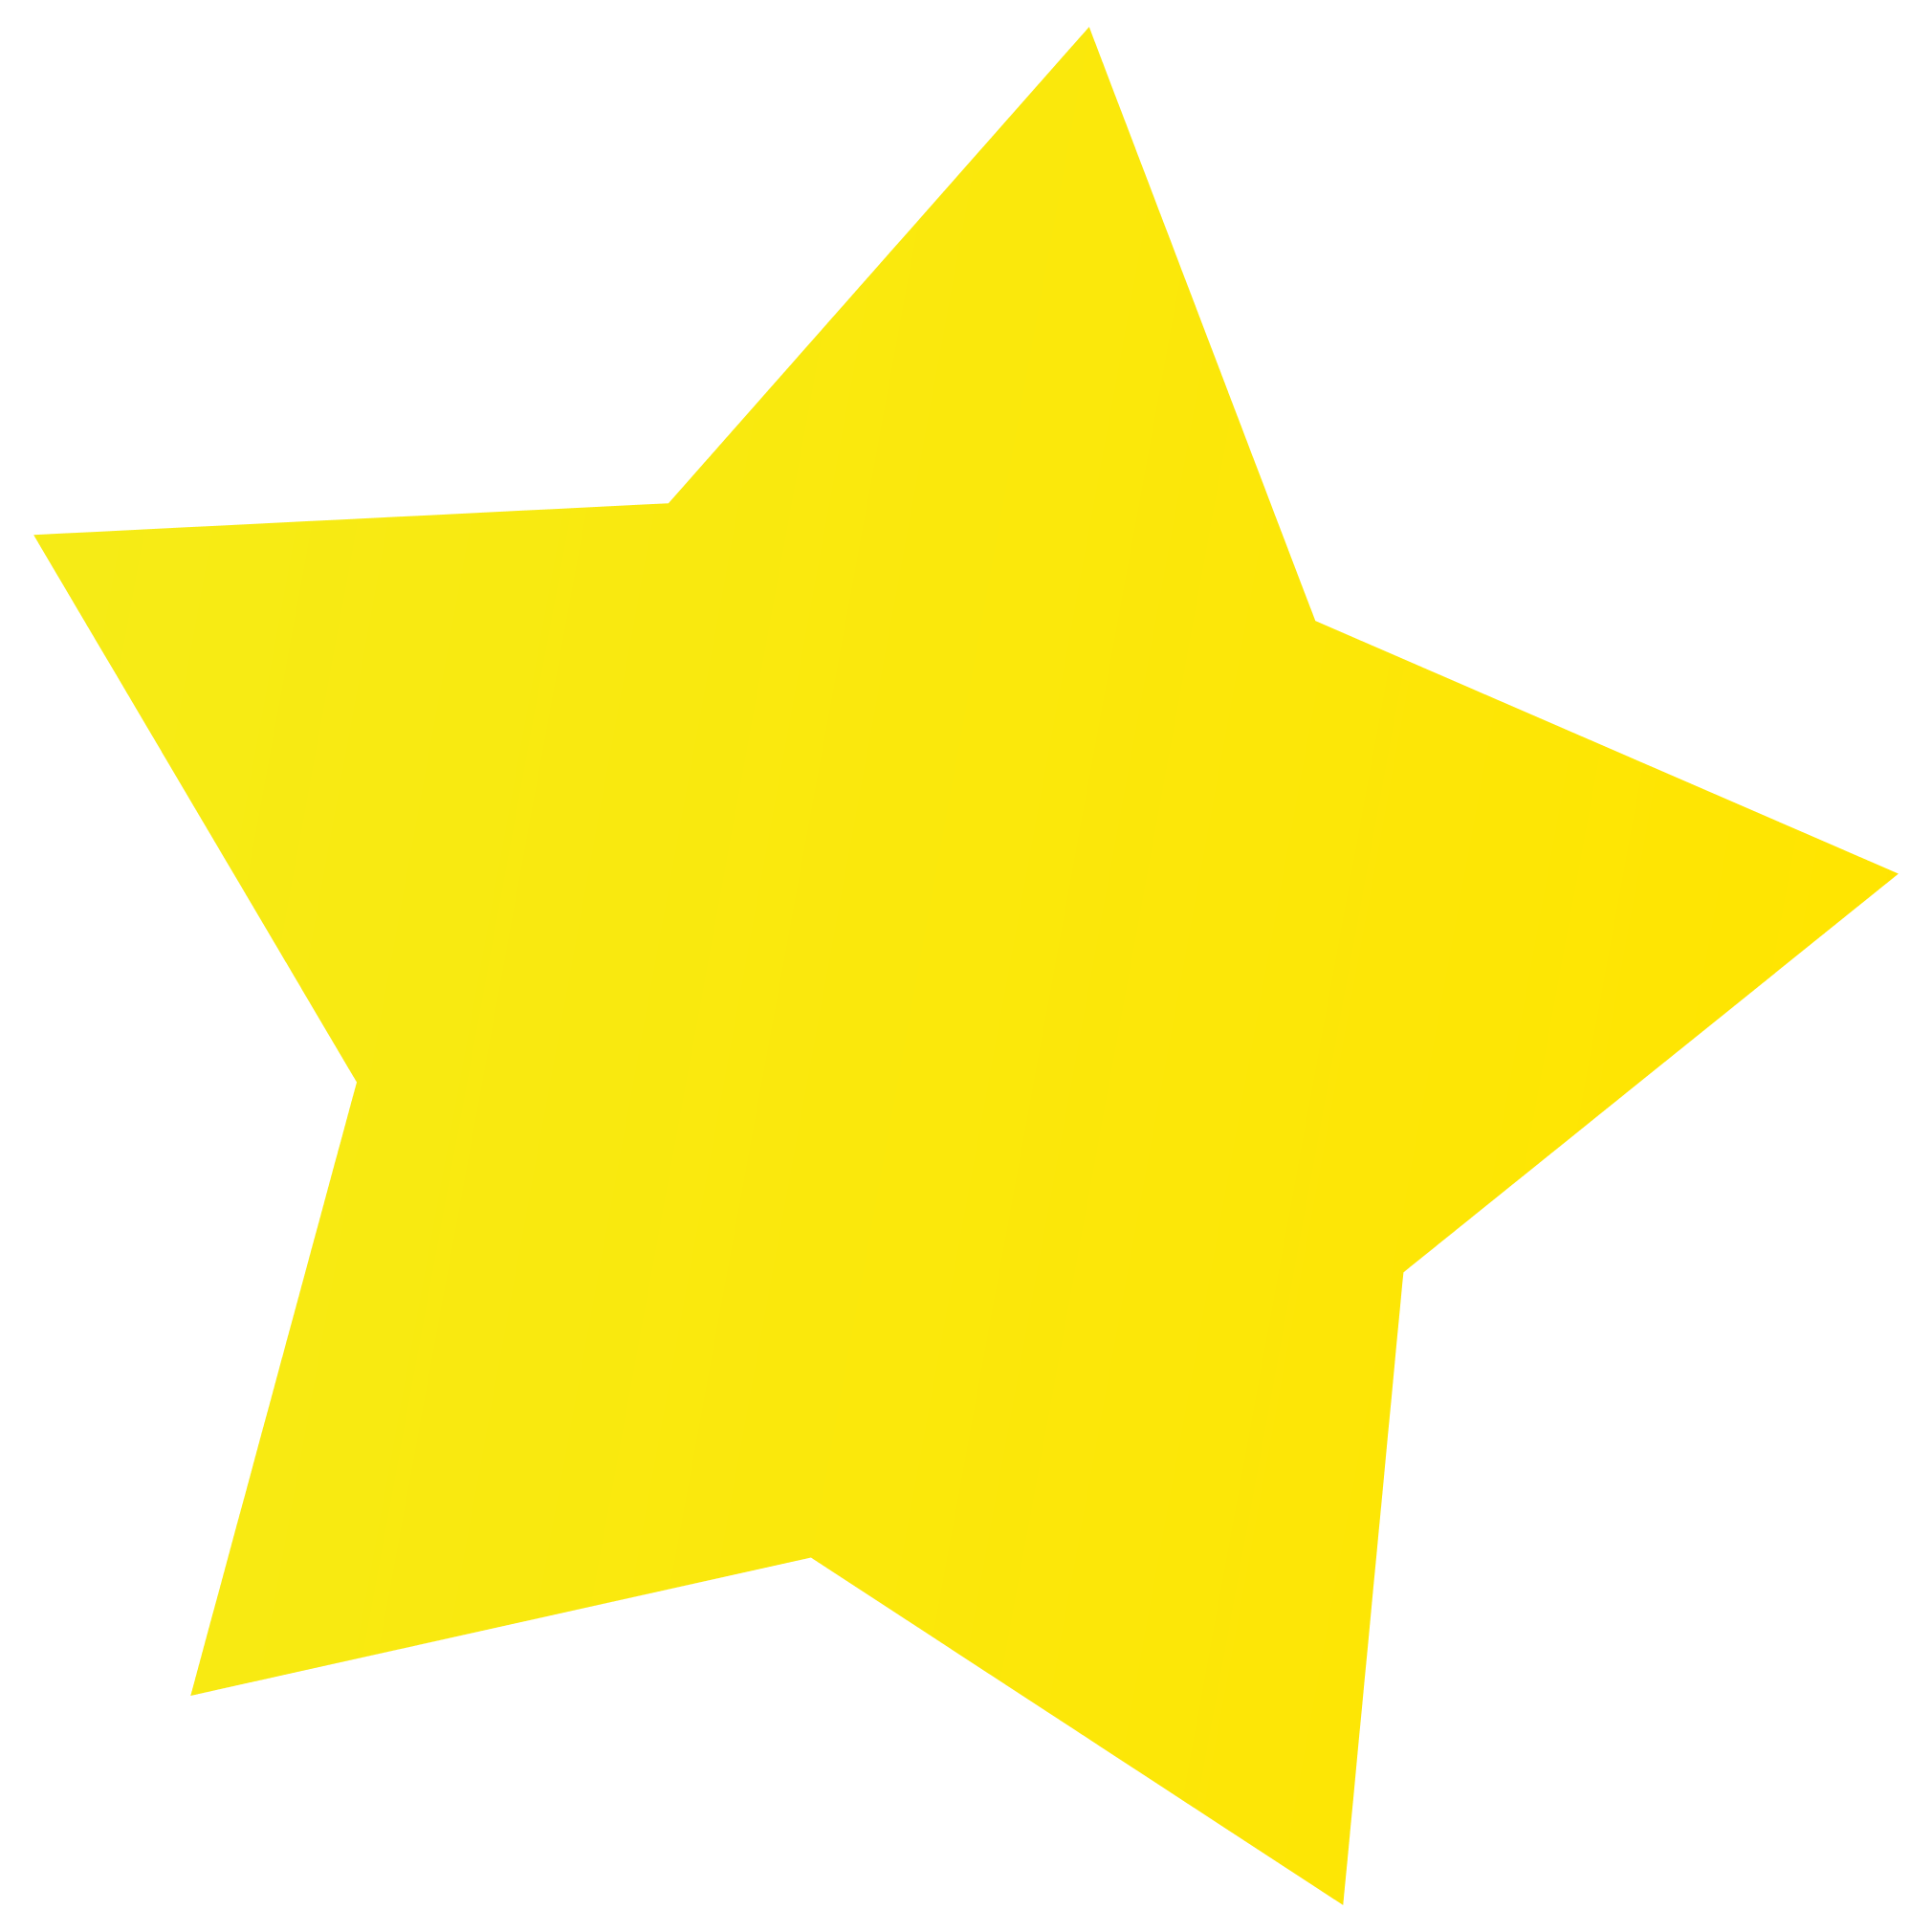 Clip Art Star Png   ClipArt Best image #616